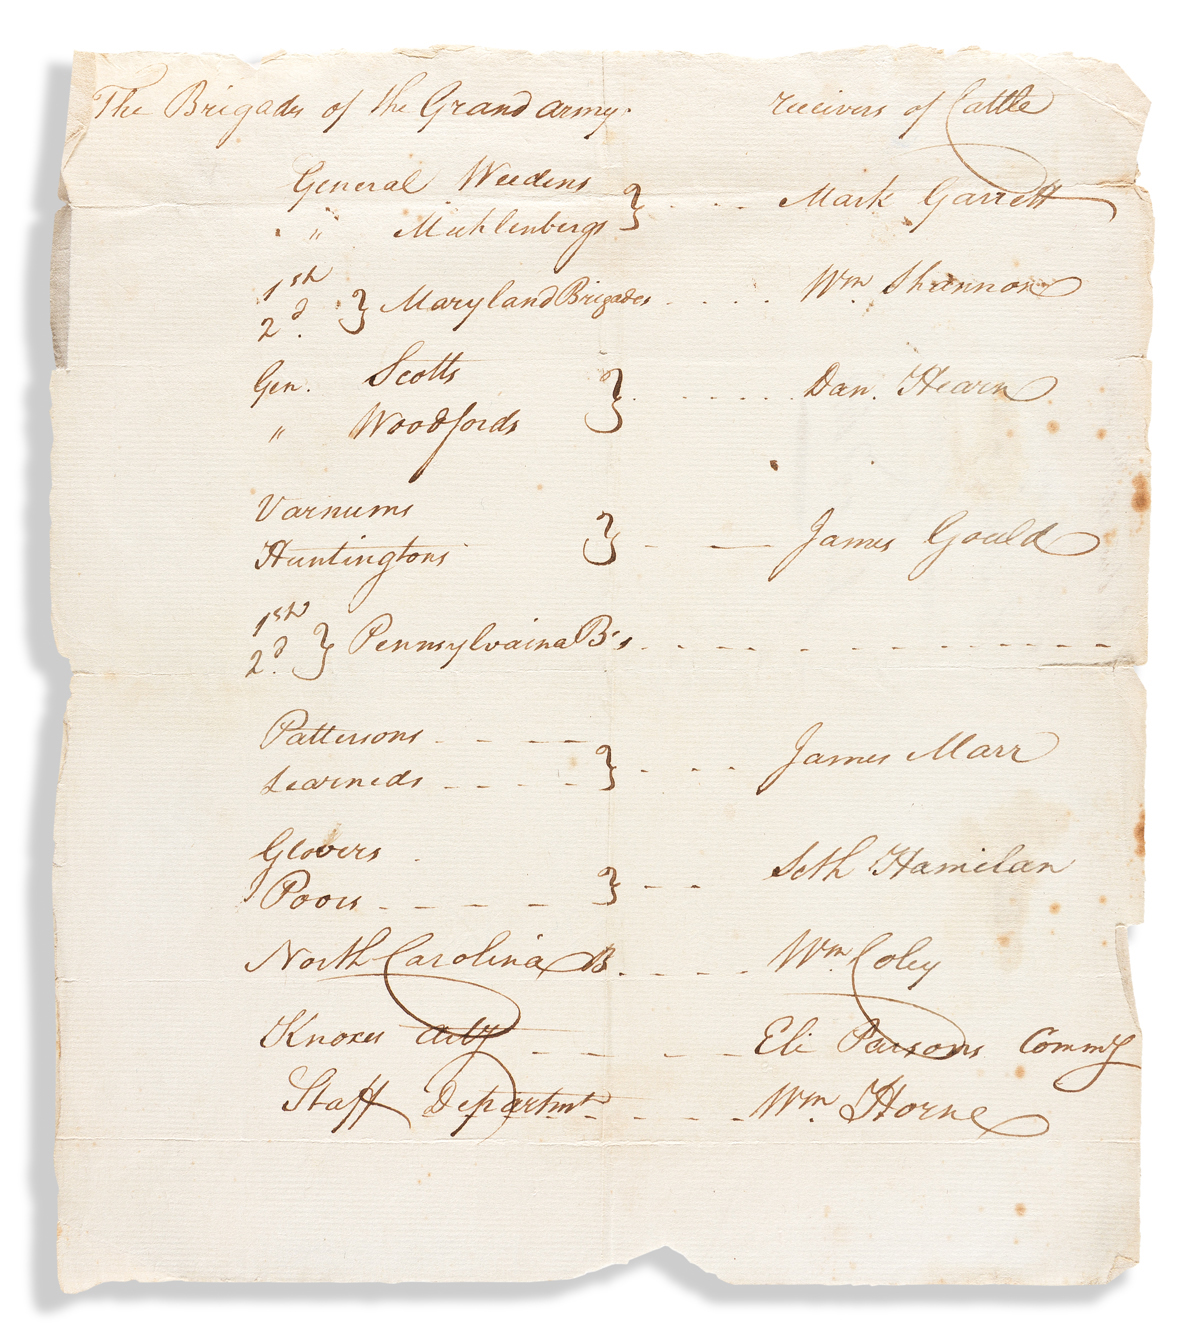 (AMERICAN REVOLUTION--1778.) List of Continental Army brigades 4 days after leaving Valley Forge, with Receivers of Cattle for each.